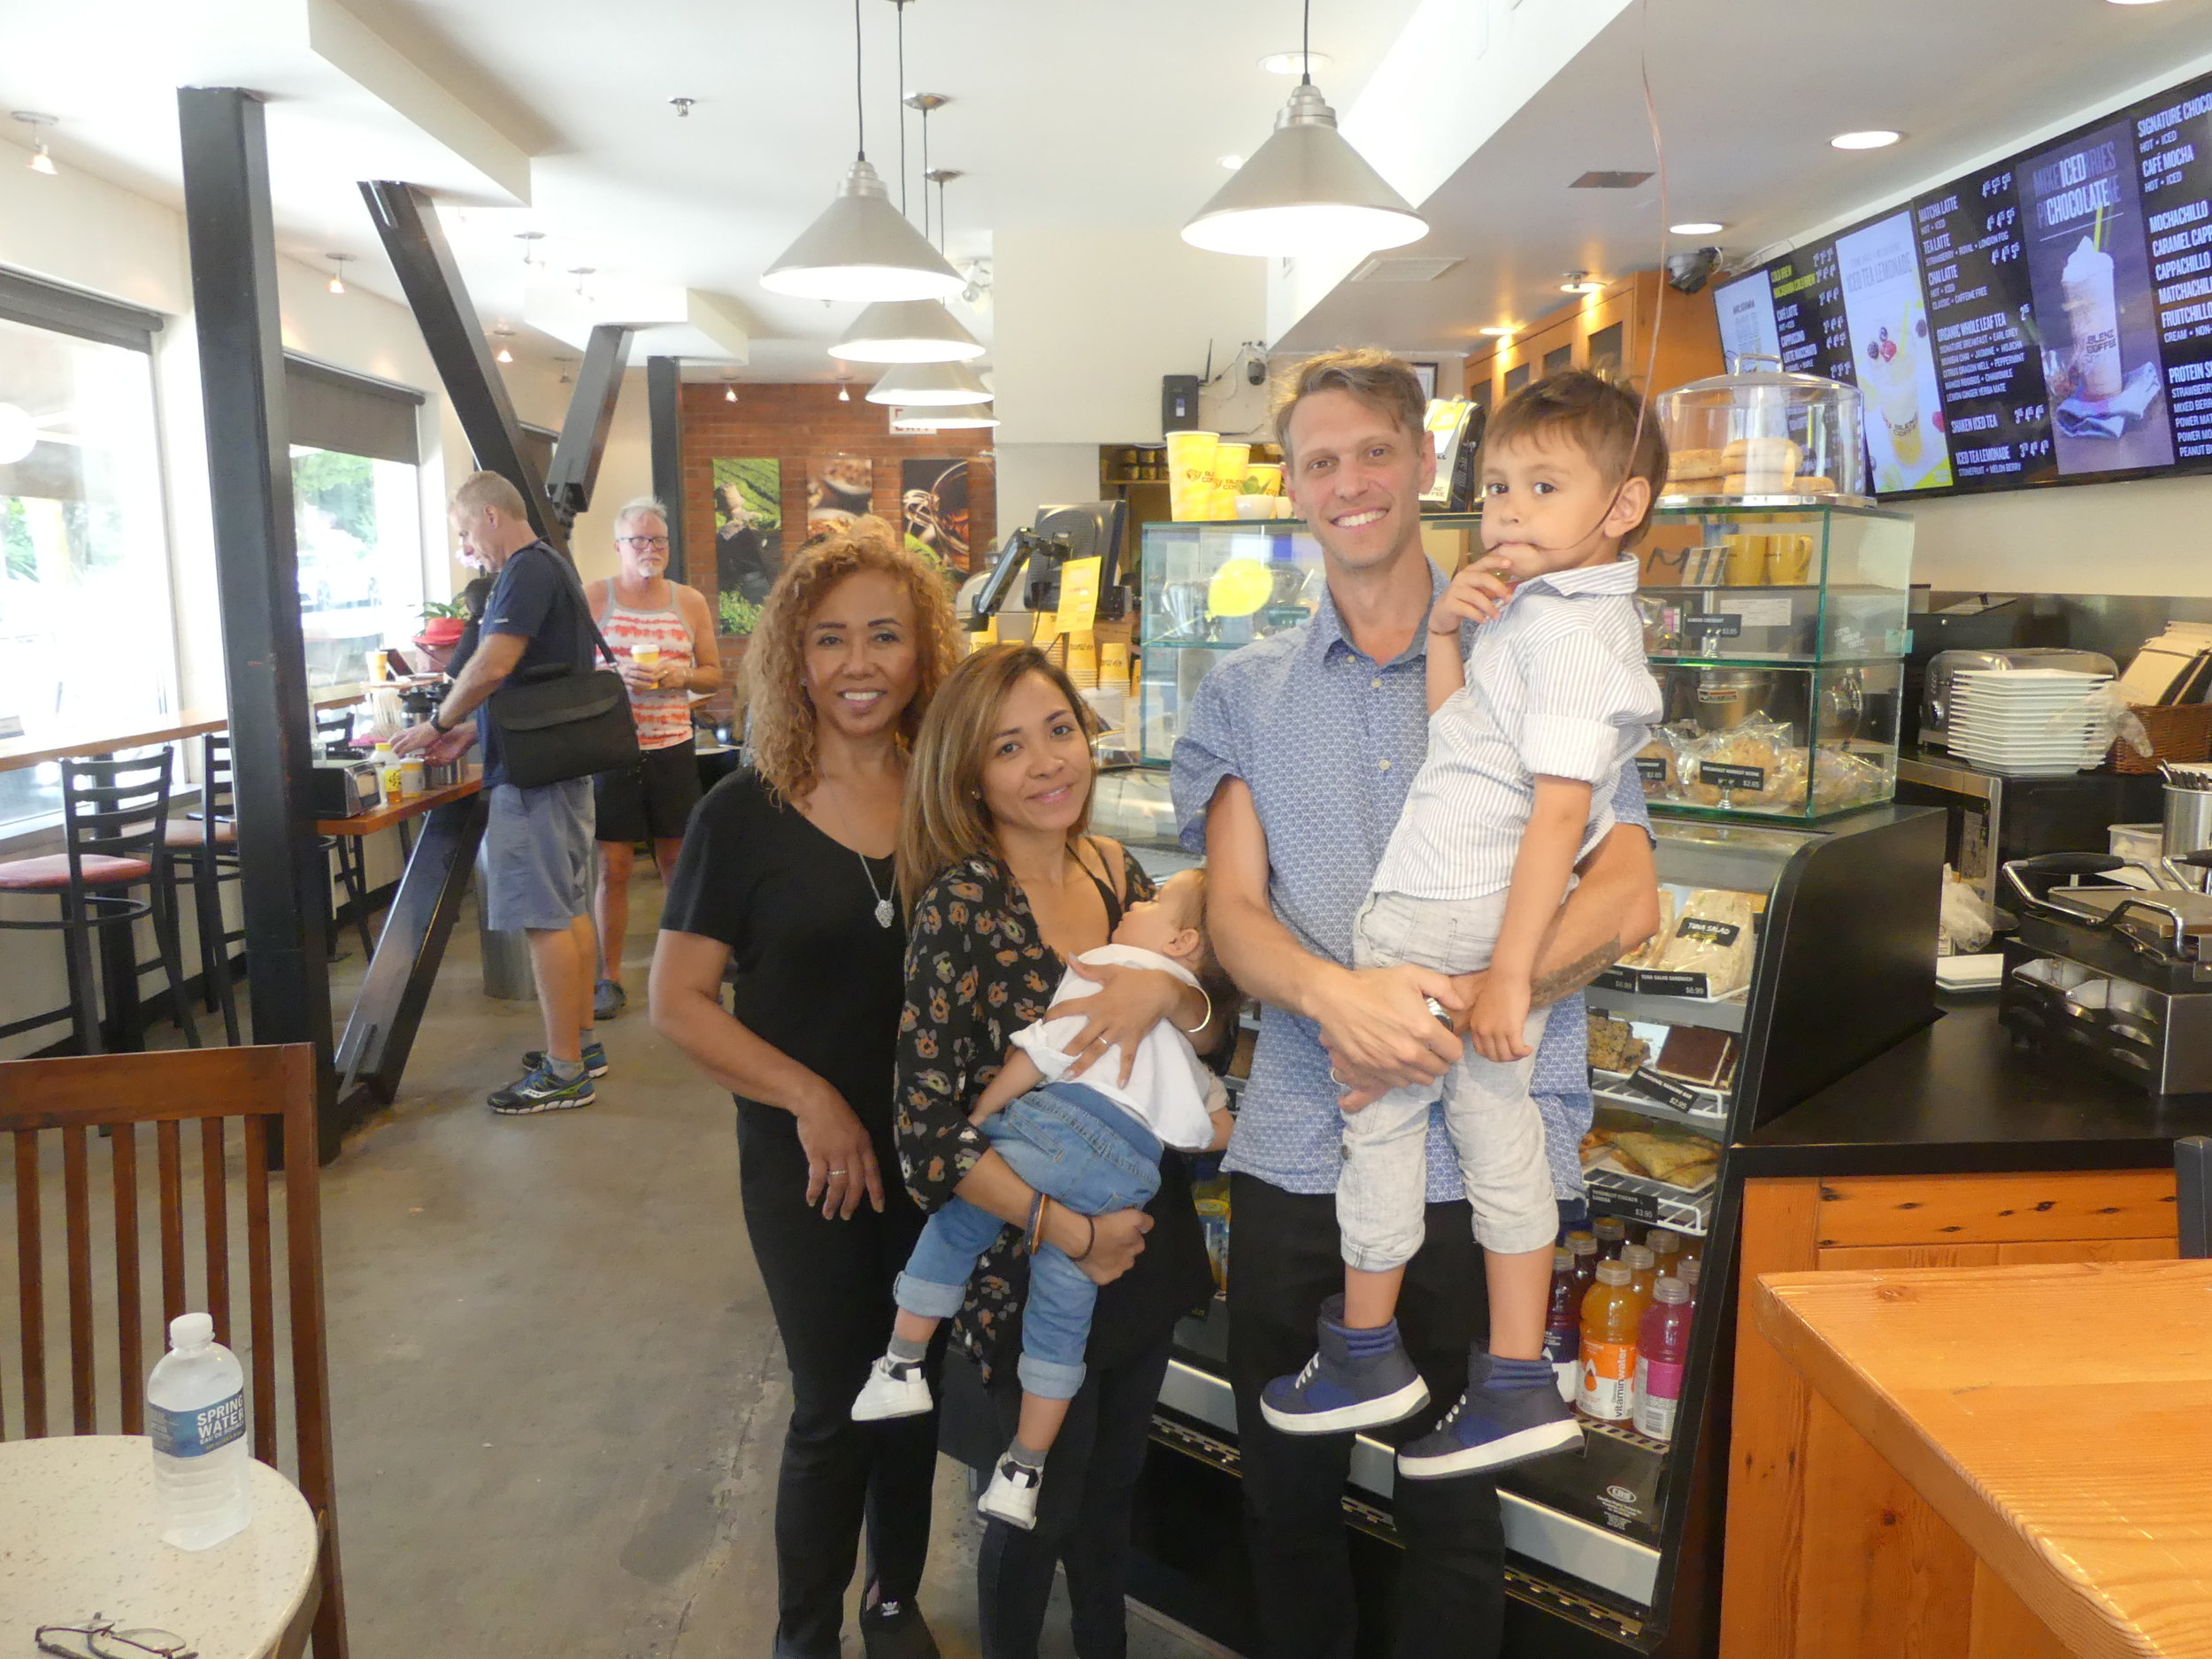 Under New Management! A big West End welcome to the new owners of Blenz on Denman (from left): Elizabeth Silva, her daughter Jaysh Varesio, 18-month-old Brooklyn, Michael Varesio, and four-year-old Rome. Welcome to the 'hood!